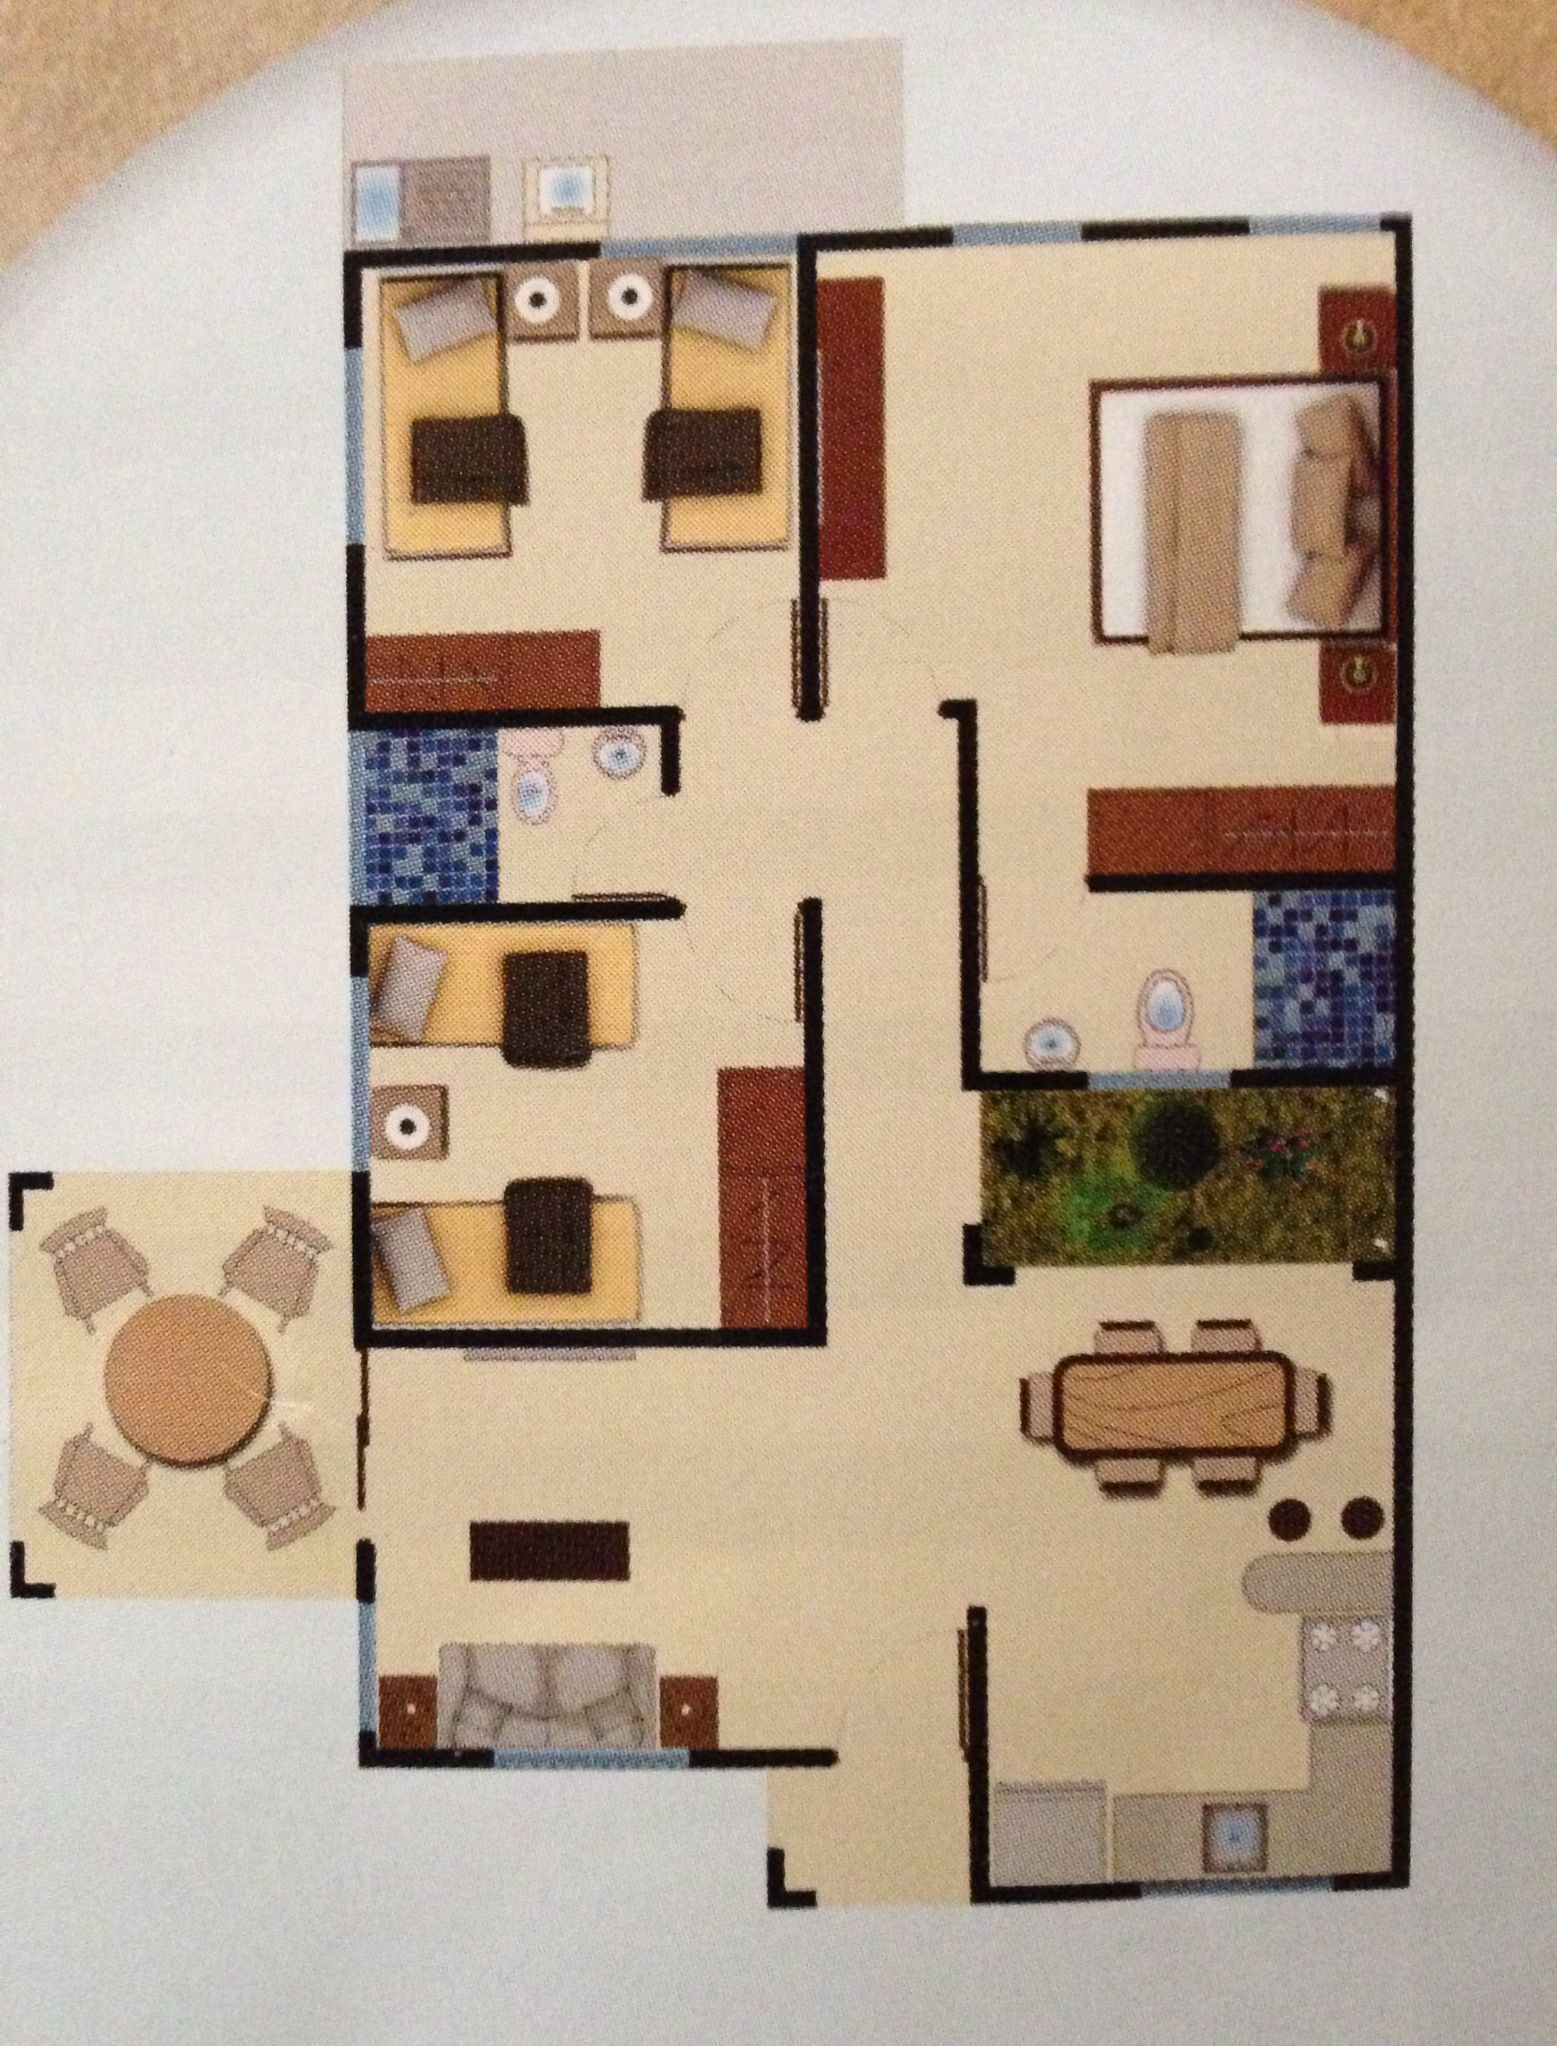 Build Your Own House Plans In 2020 Build Your Own House House Plans Design Your Own Home